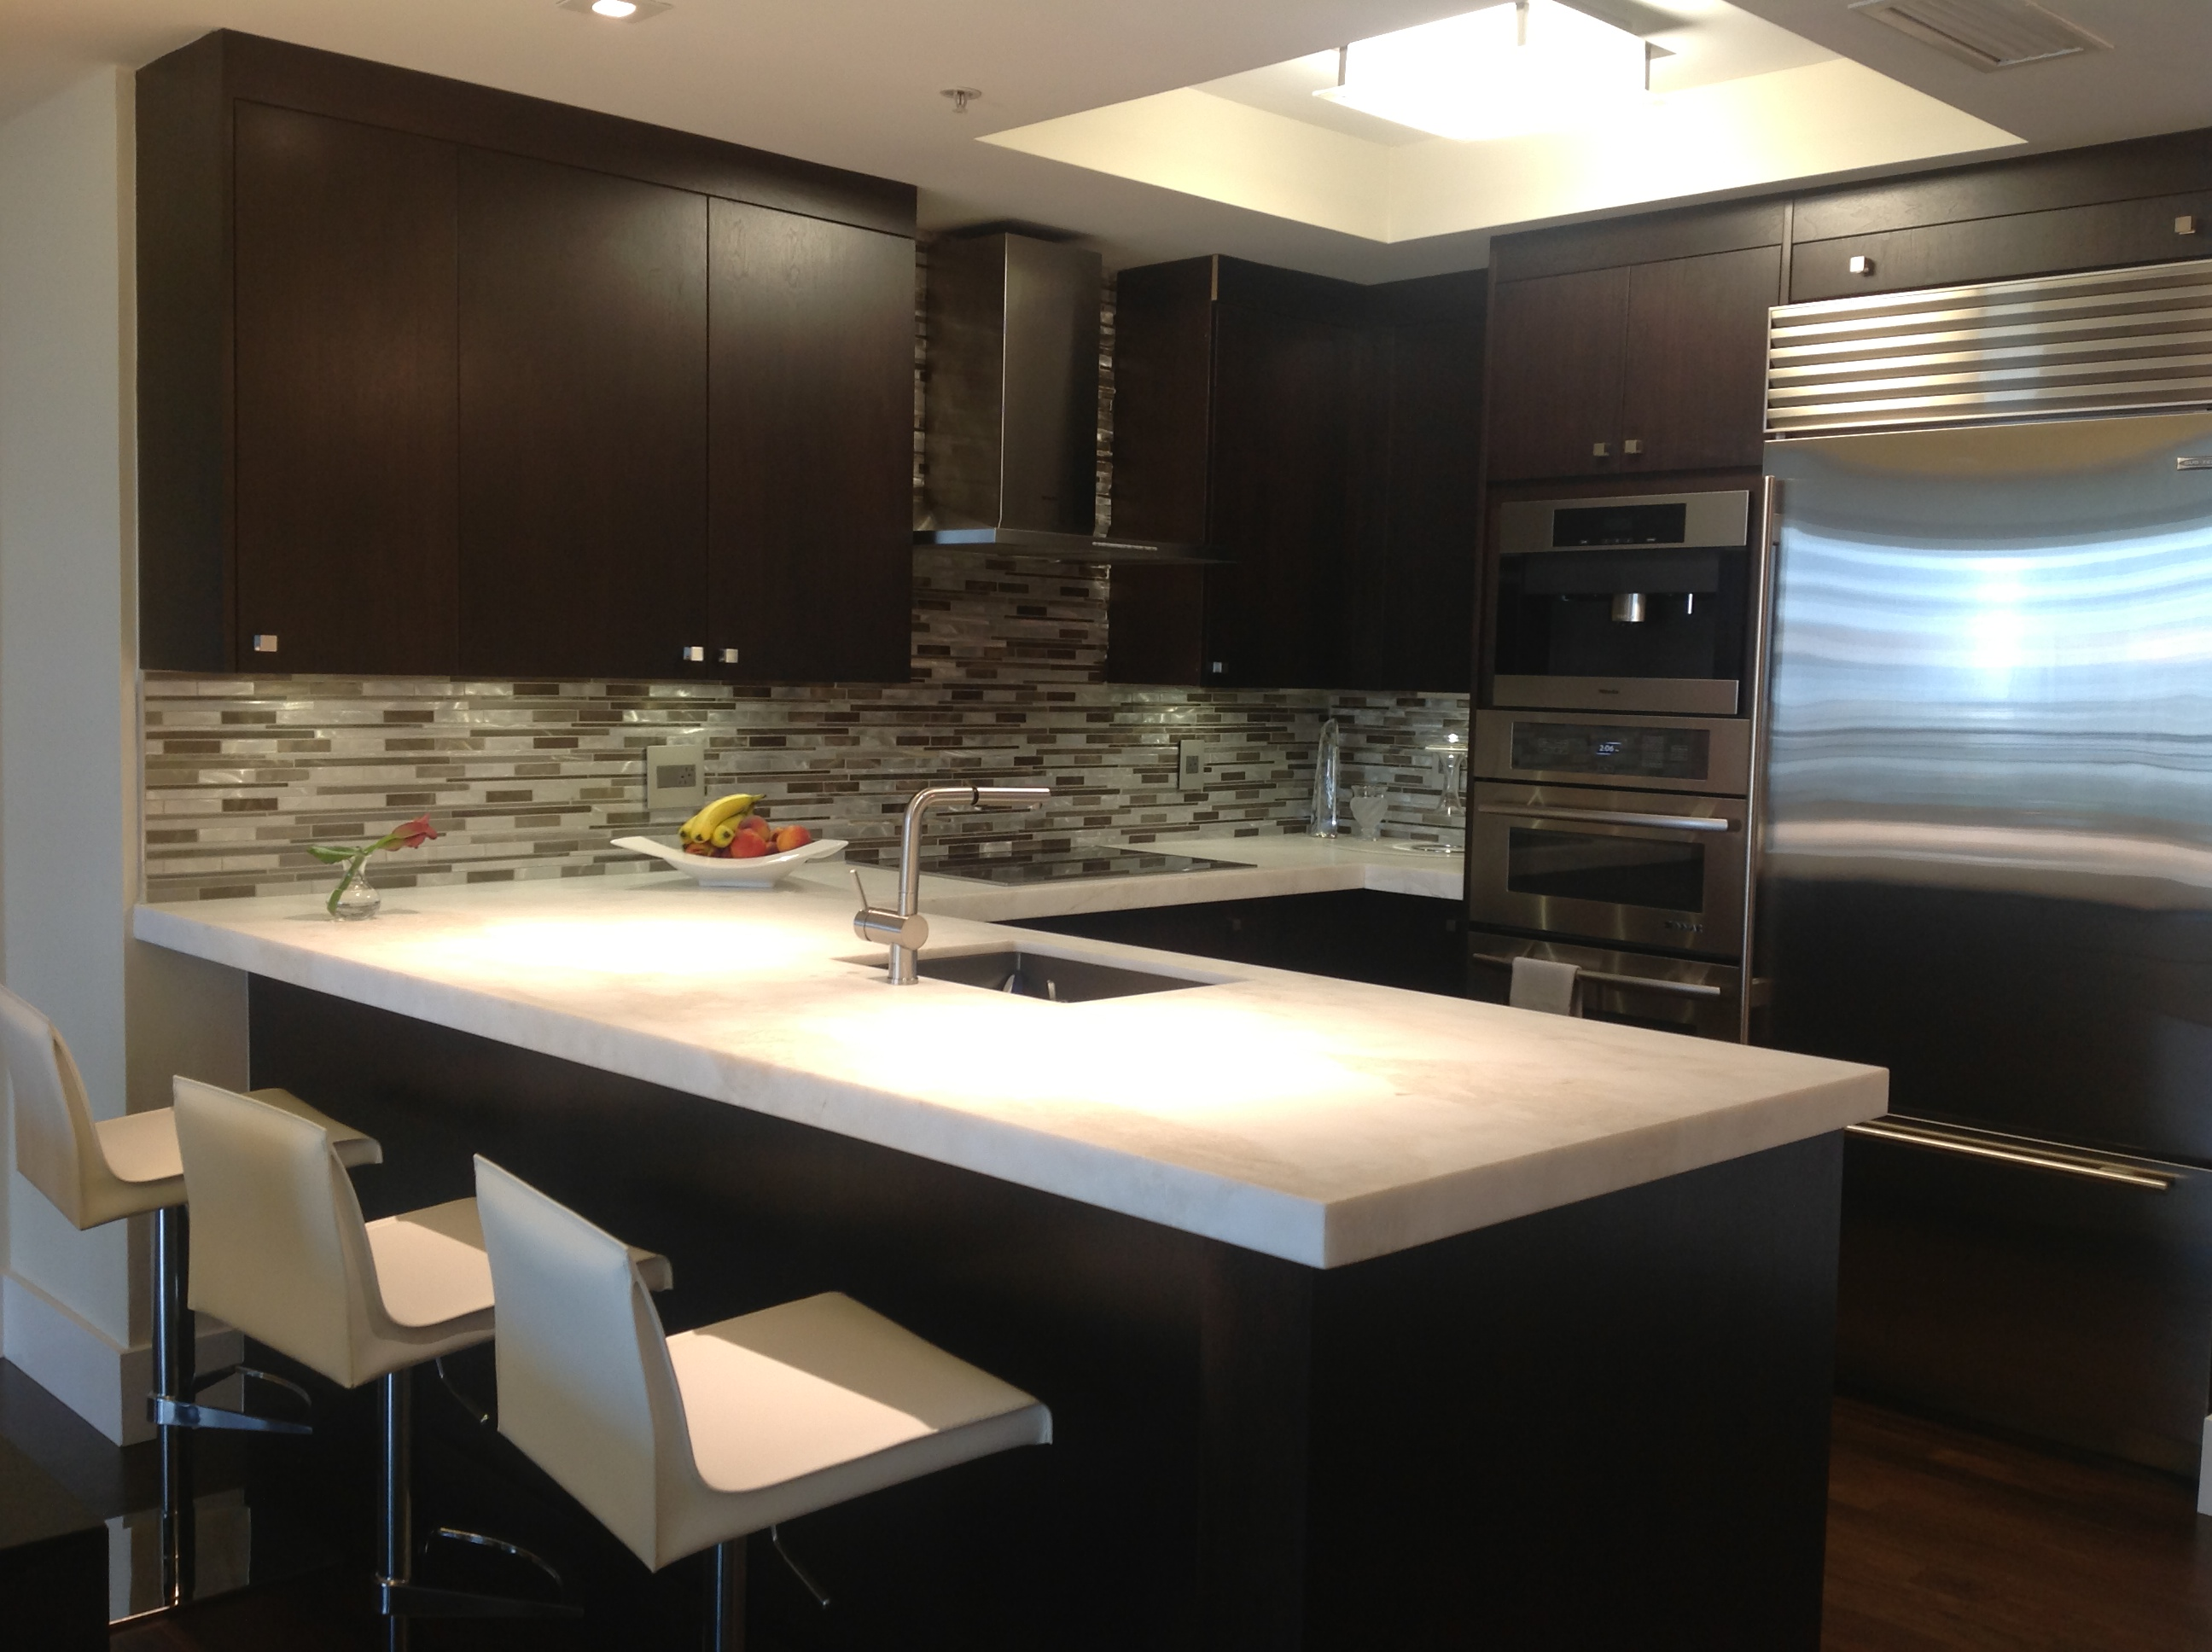 JandJ Custom Kitchen cabinets pany